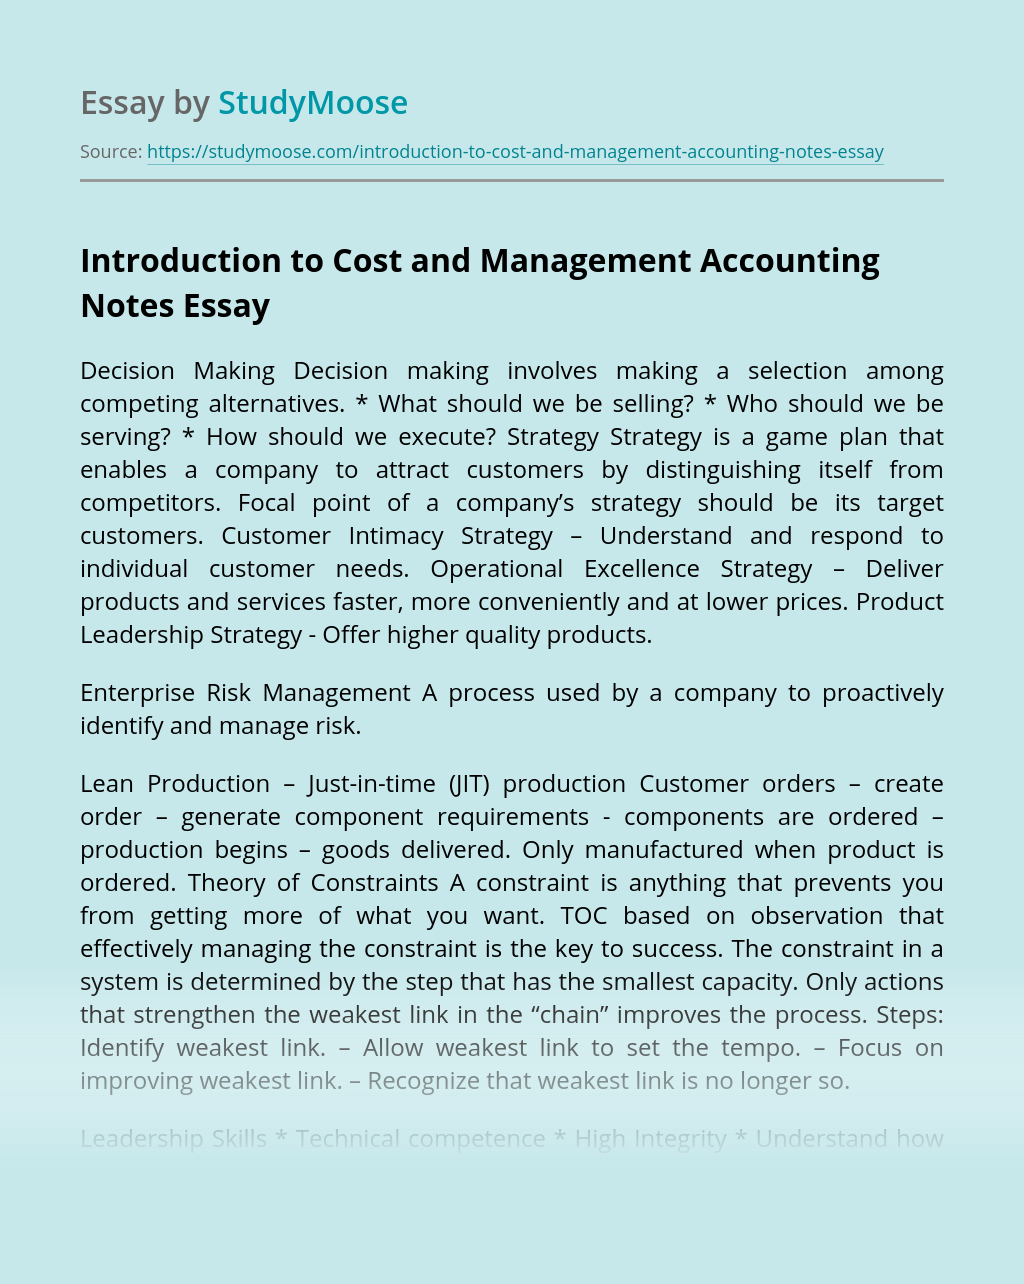 Introduction to Cost and Management Accounting Notes